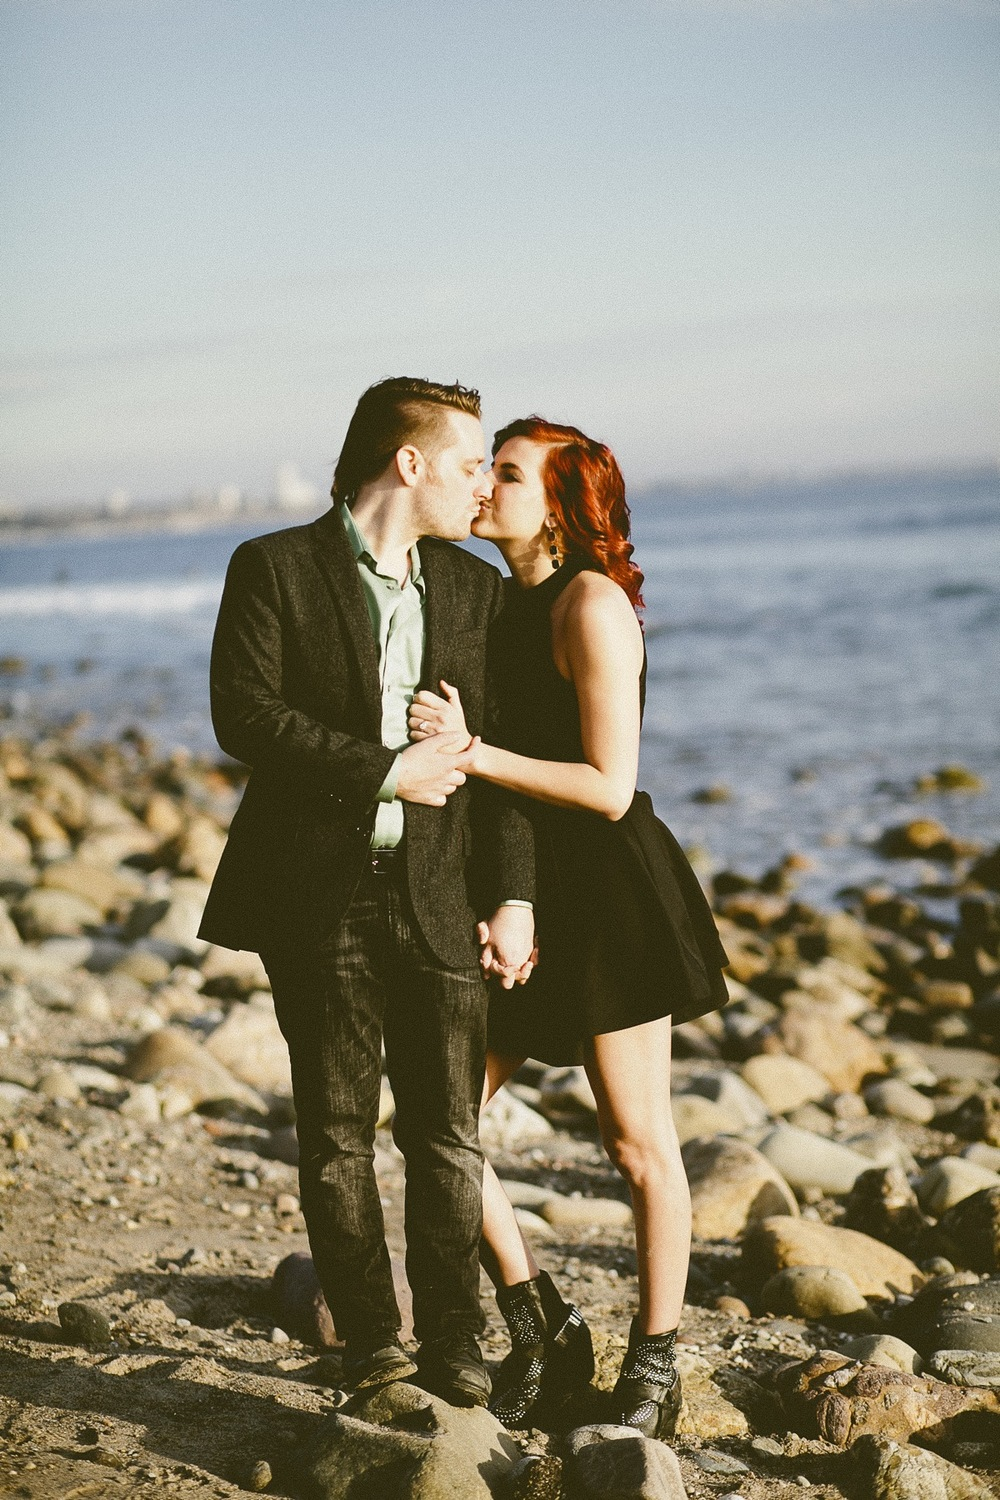 A Los Angeles Baqlcony Proposal | Los Angeles Proposal Photographer